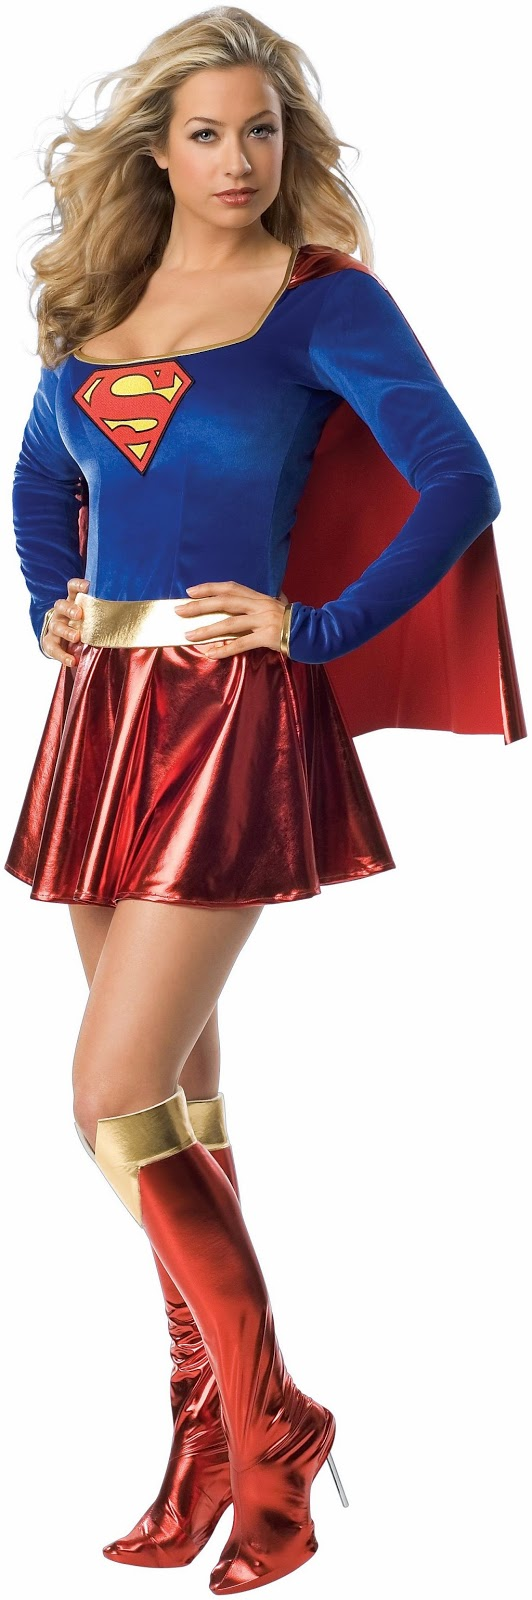 supergirl-costume